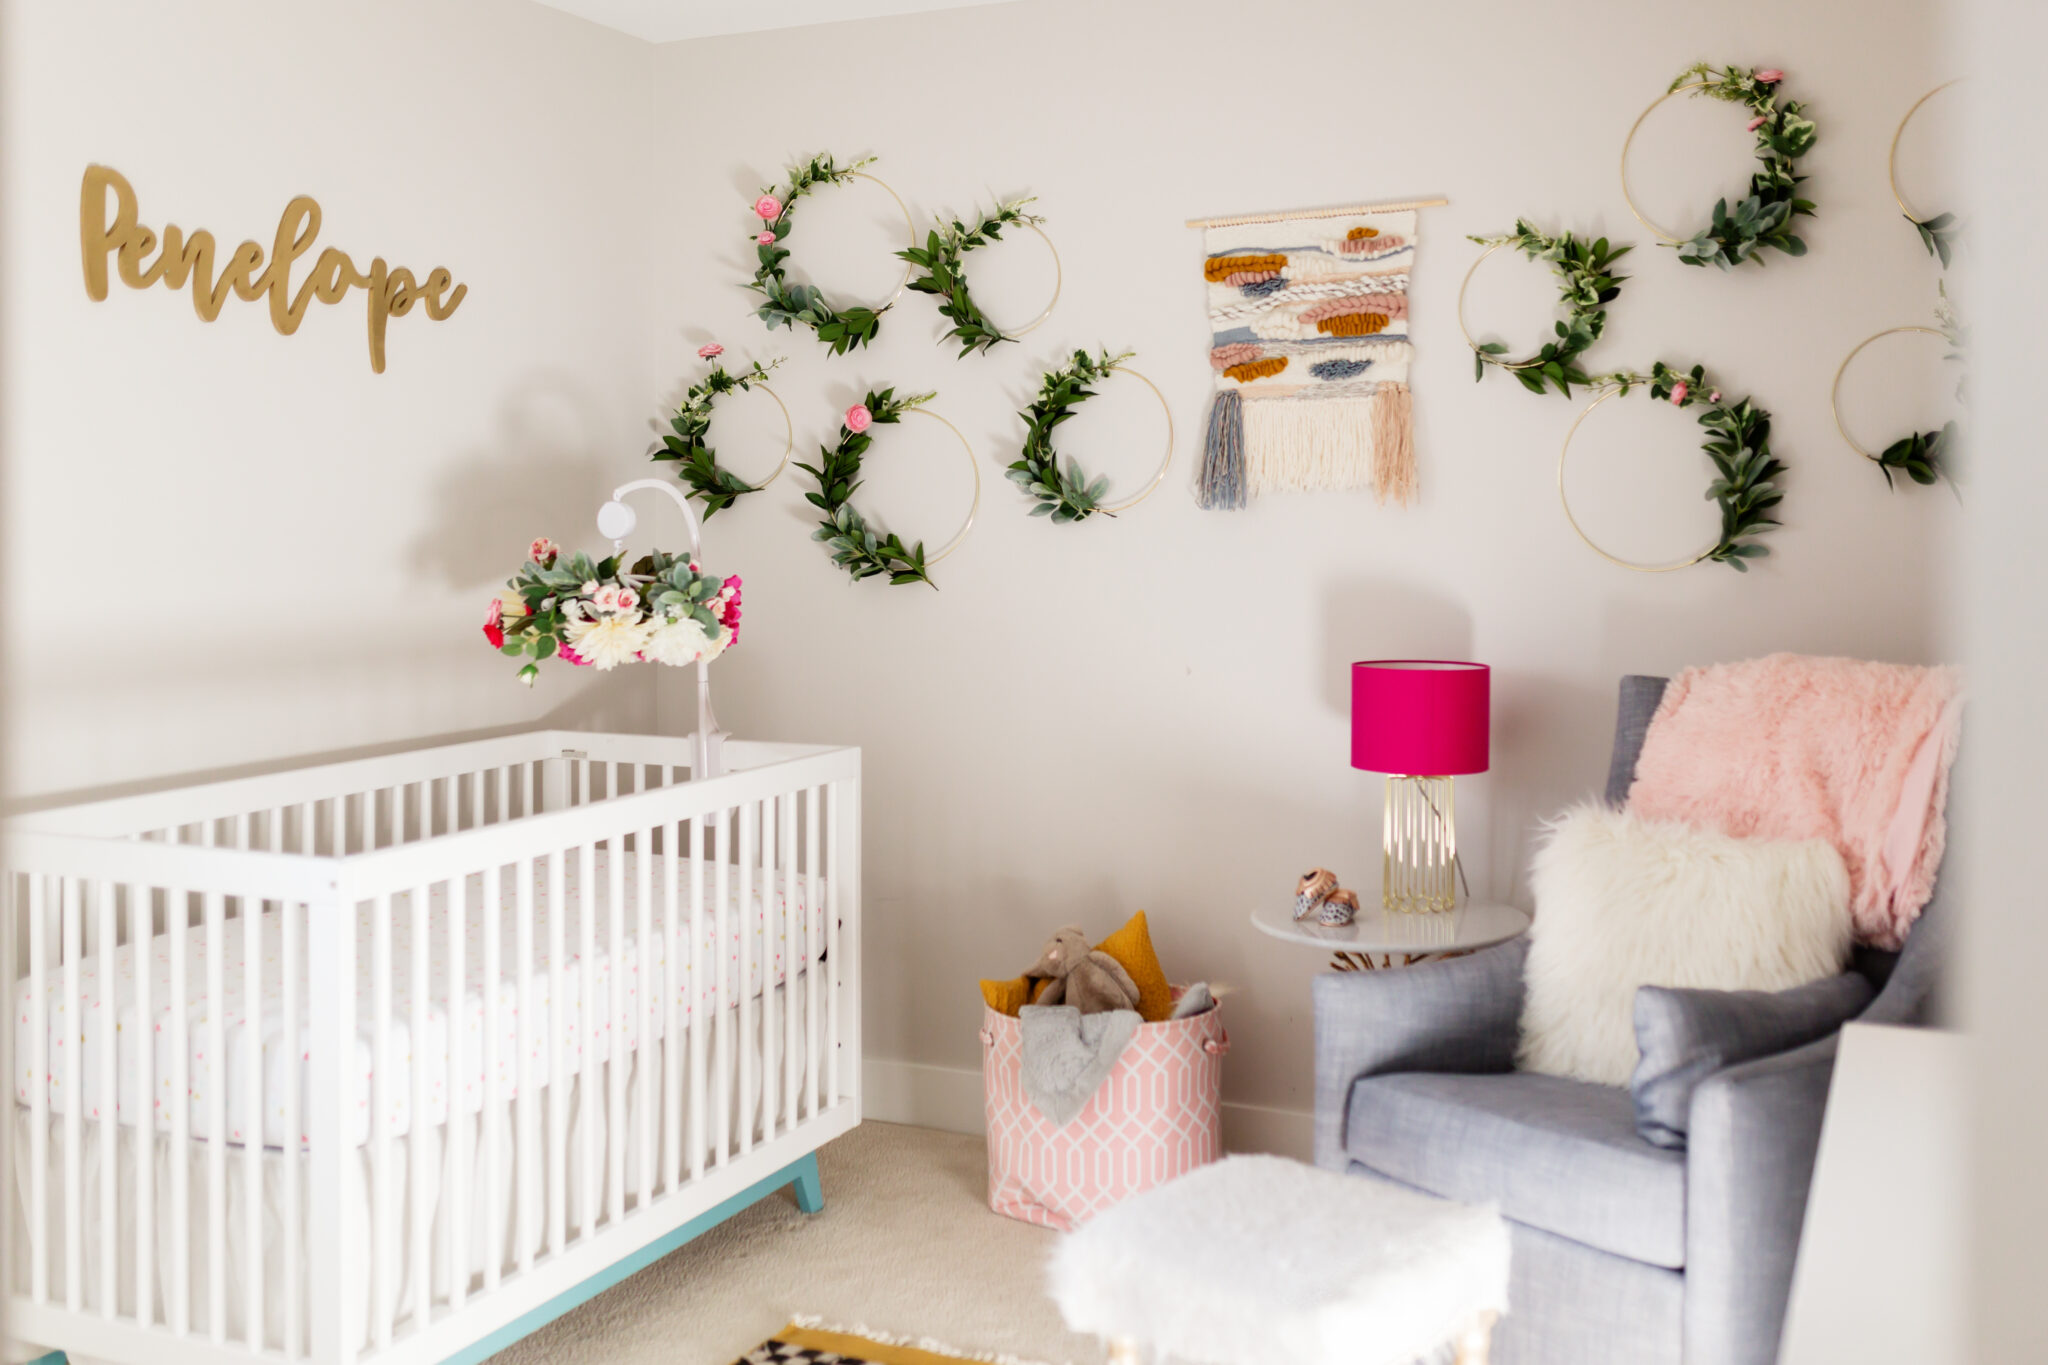 girly chic nursery with greens and floral